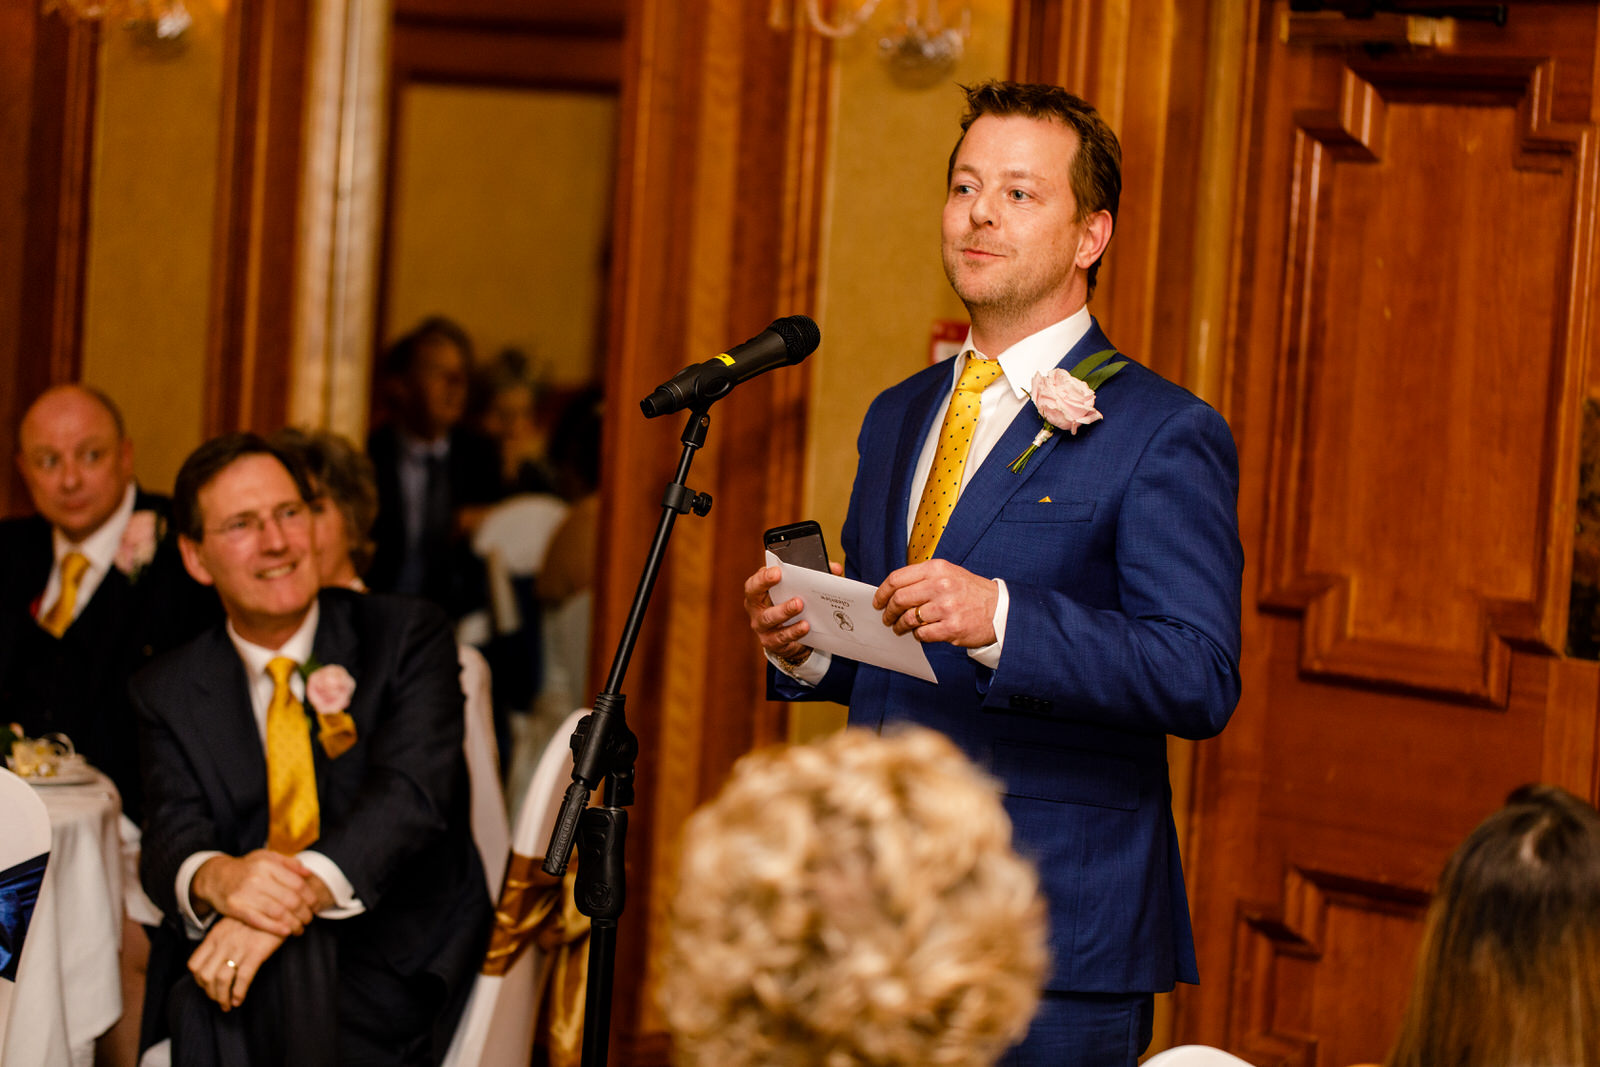 Roger-kenny-wedding-photographer-wicklow-glenview_078.jpg